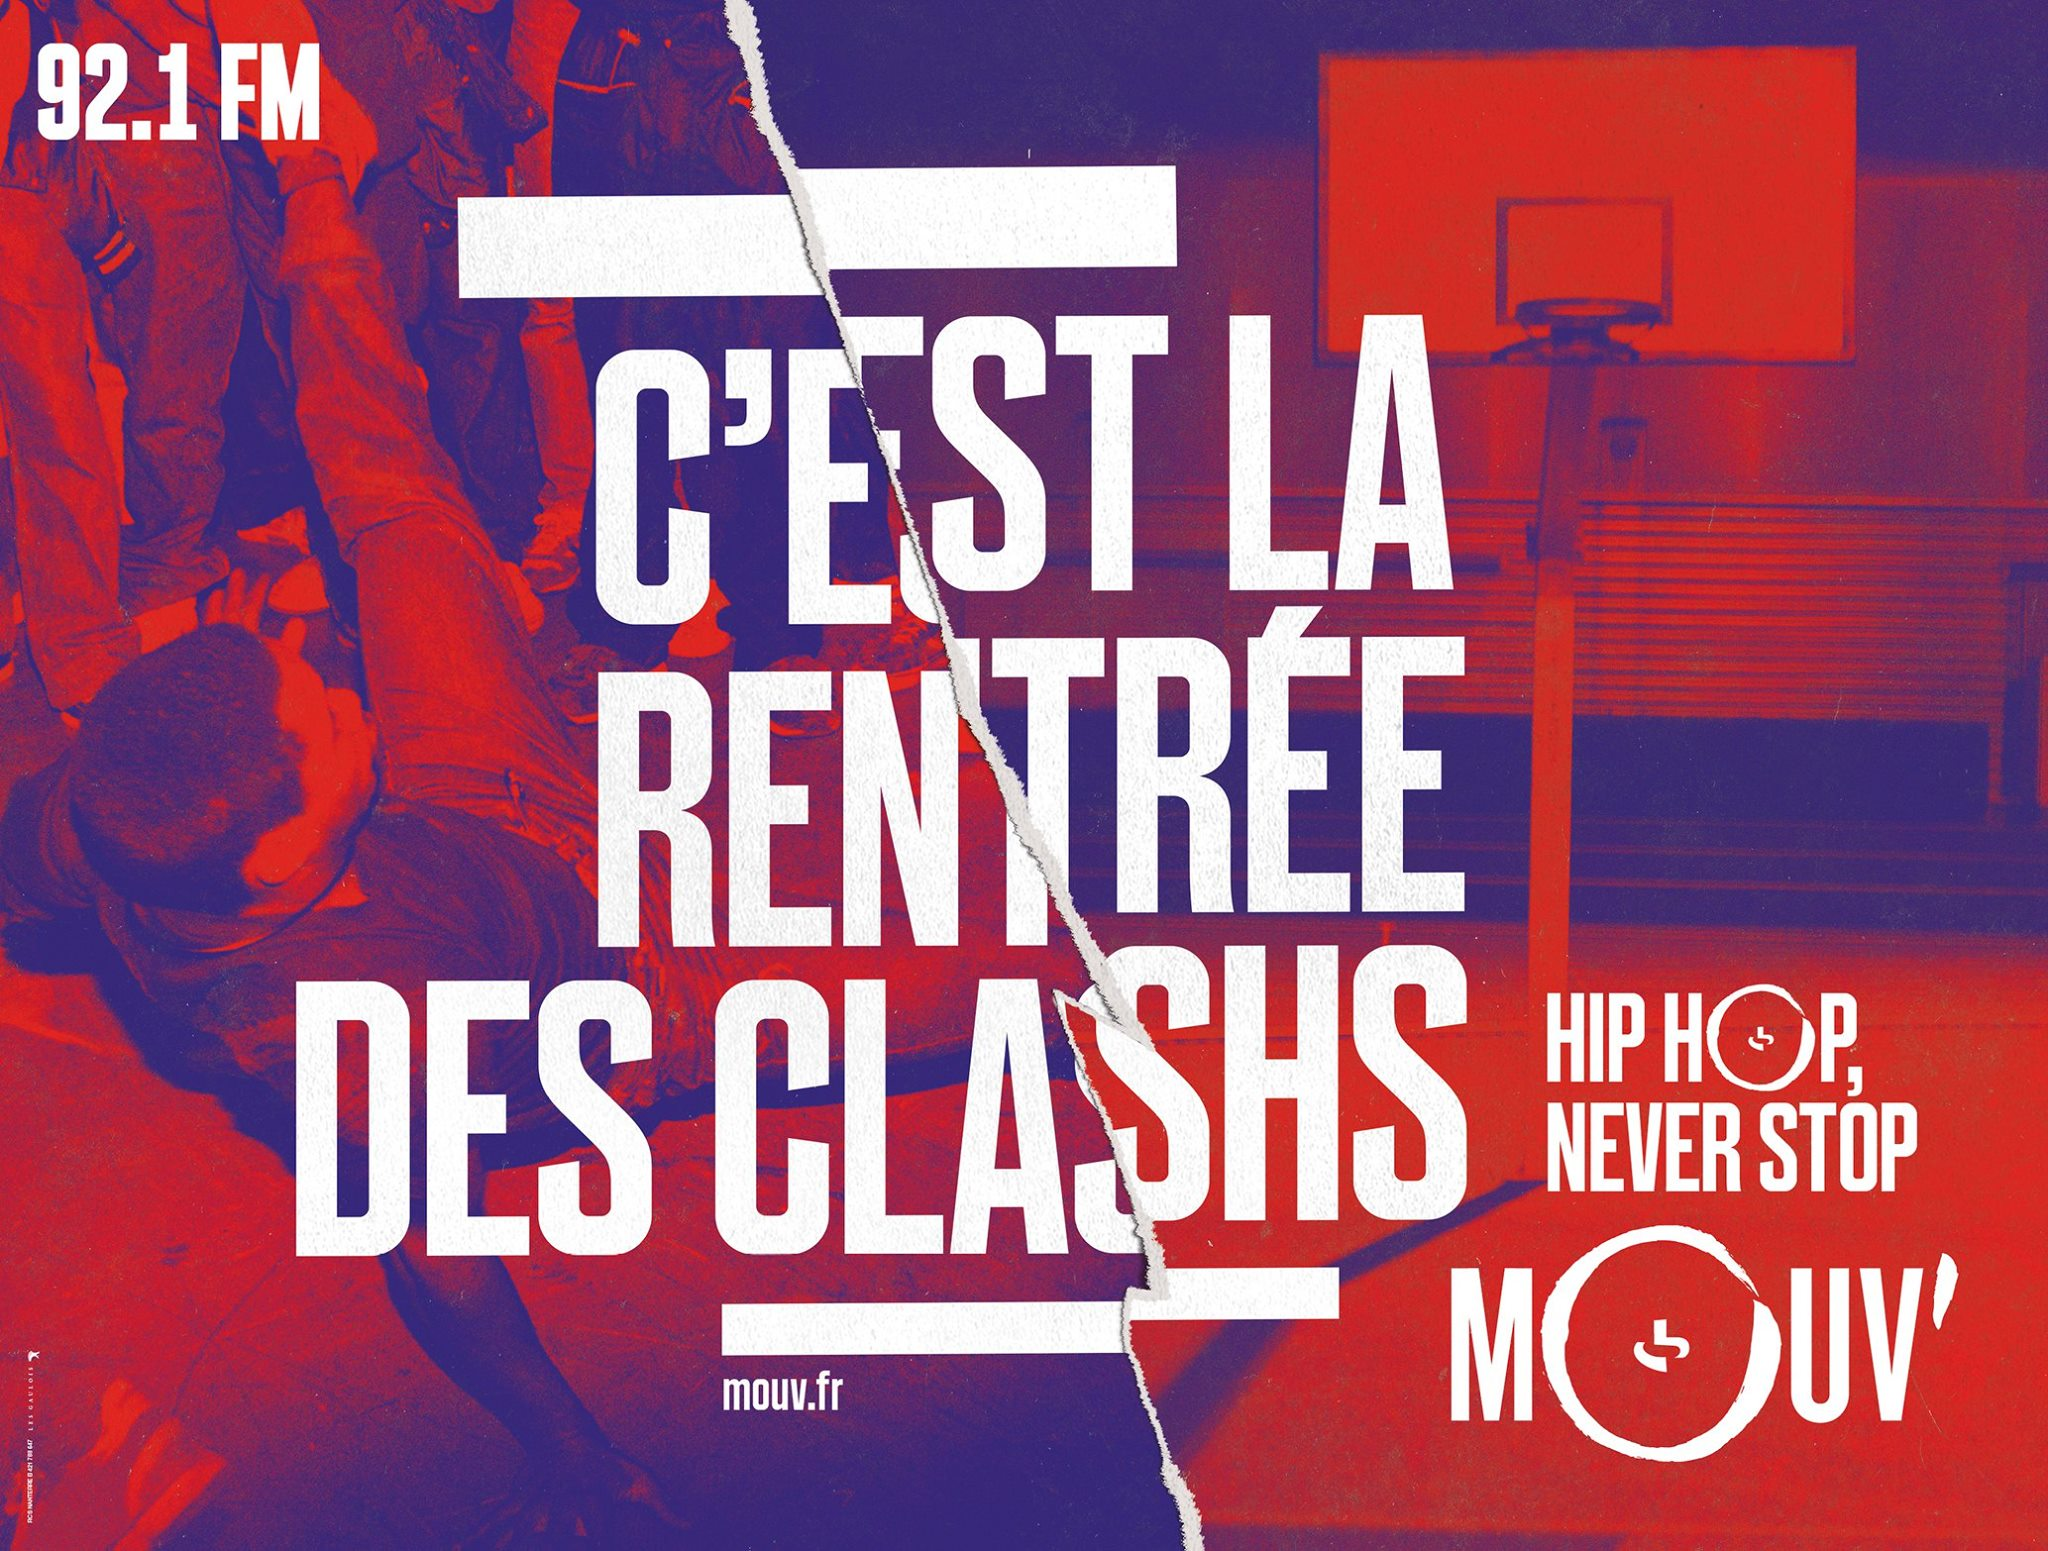 mouv-radio-hip-hop-rap-publicite-marketing-affiche-rimes-paroles-novembre-2015-agence-les-gaulois-havas-4